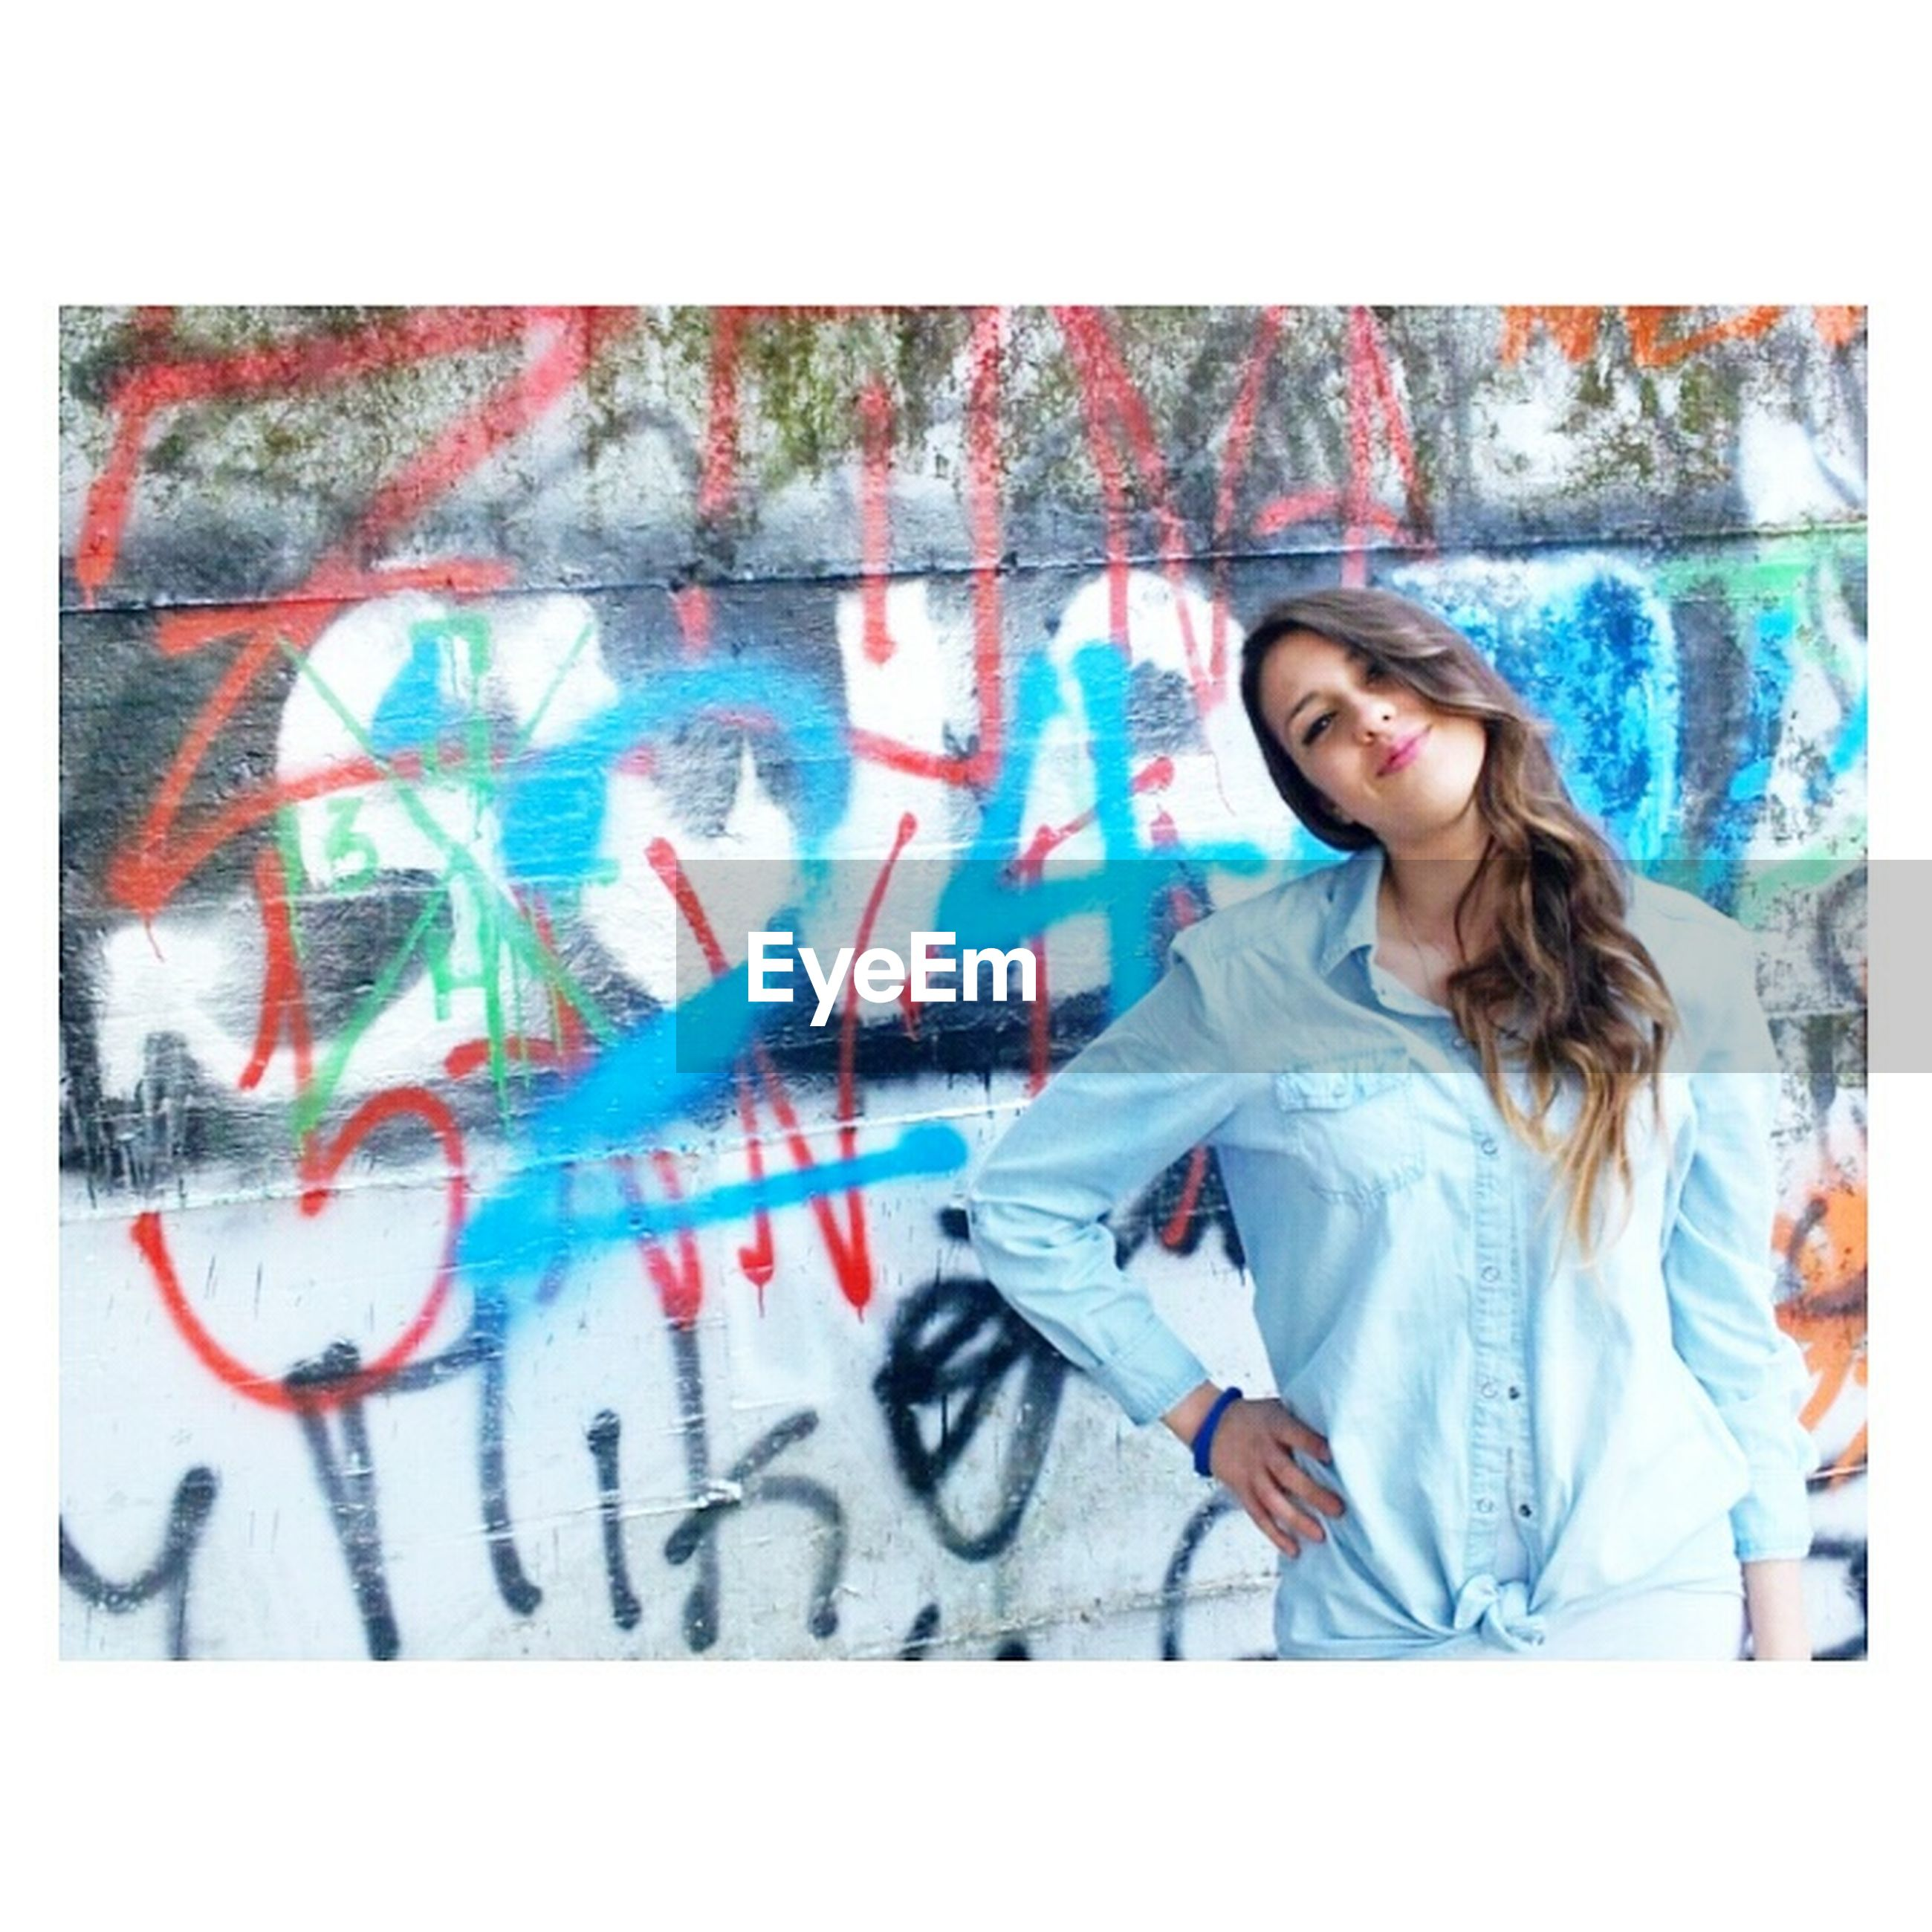 transfer print, auto post production filter, graffiti, art, creativity, art and craft, lifestyles, leisure activity, text, wall - building feature, young adult, western script, casual clothing, communication, person, indoors, multi colored, front view